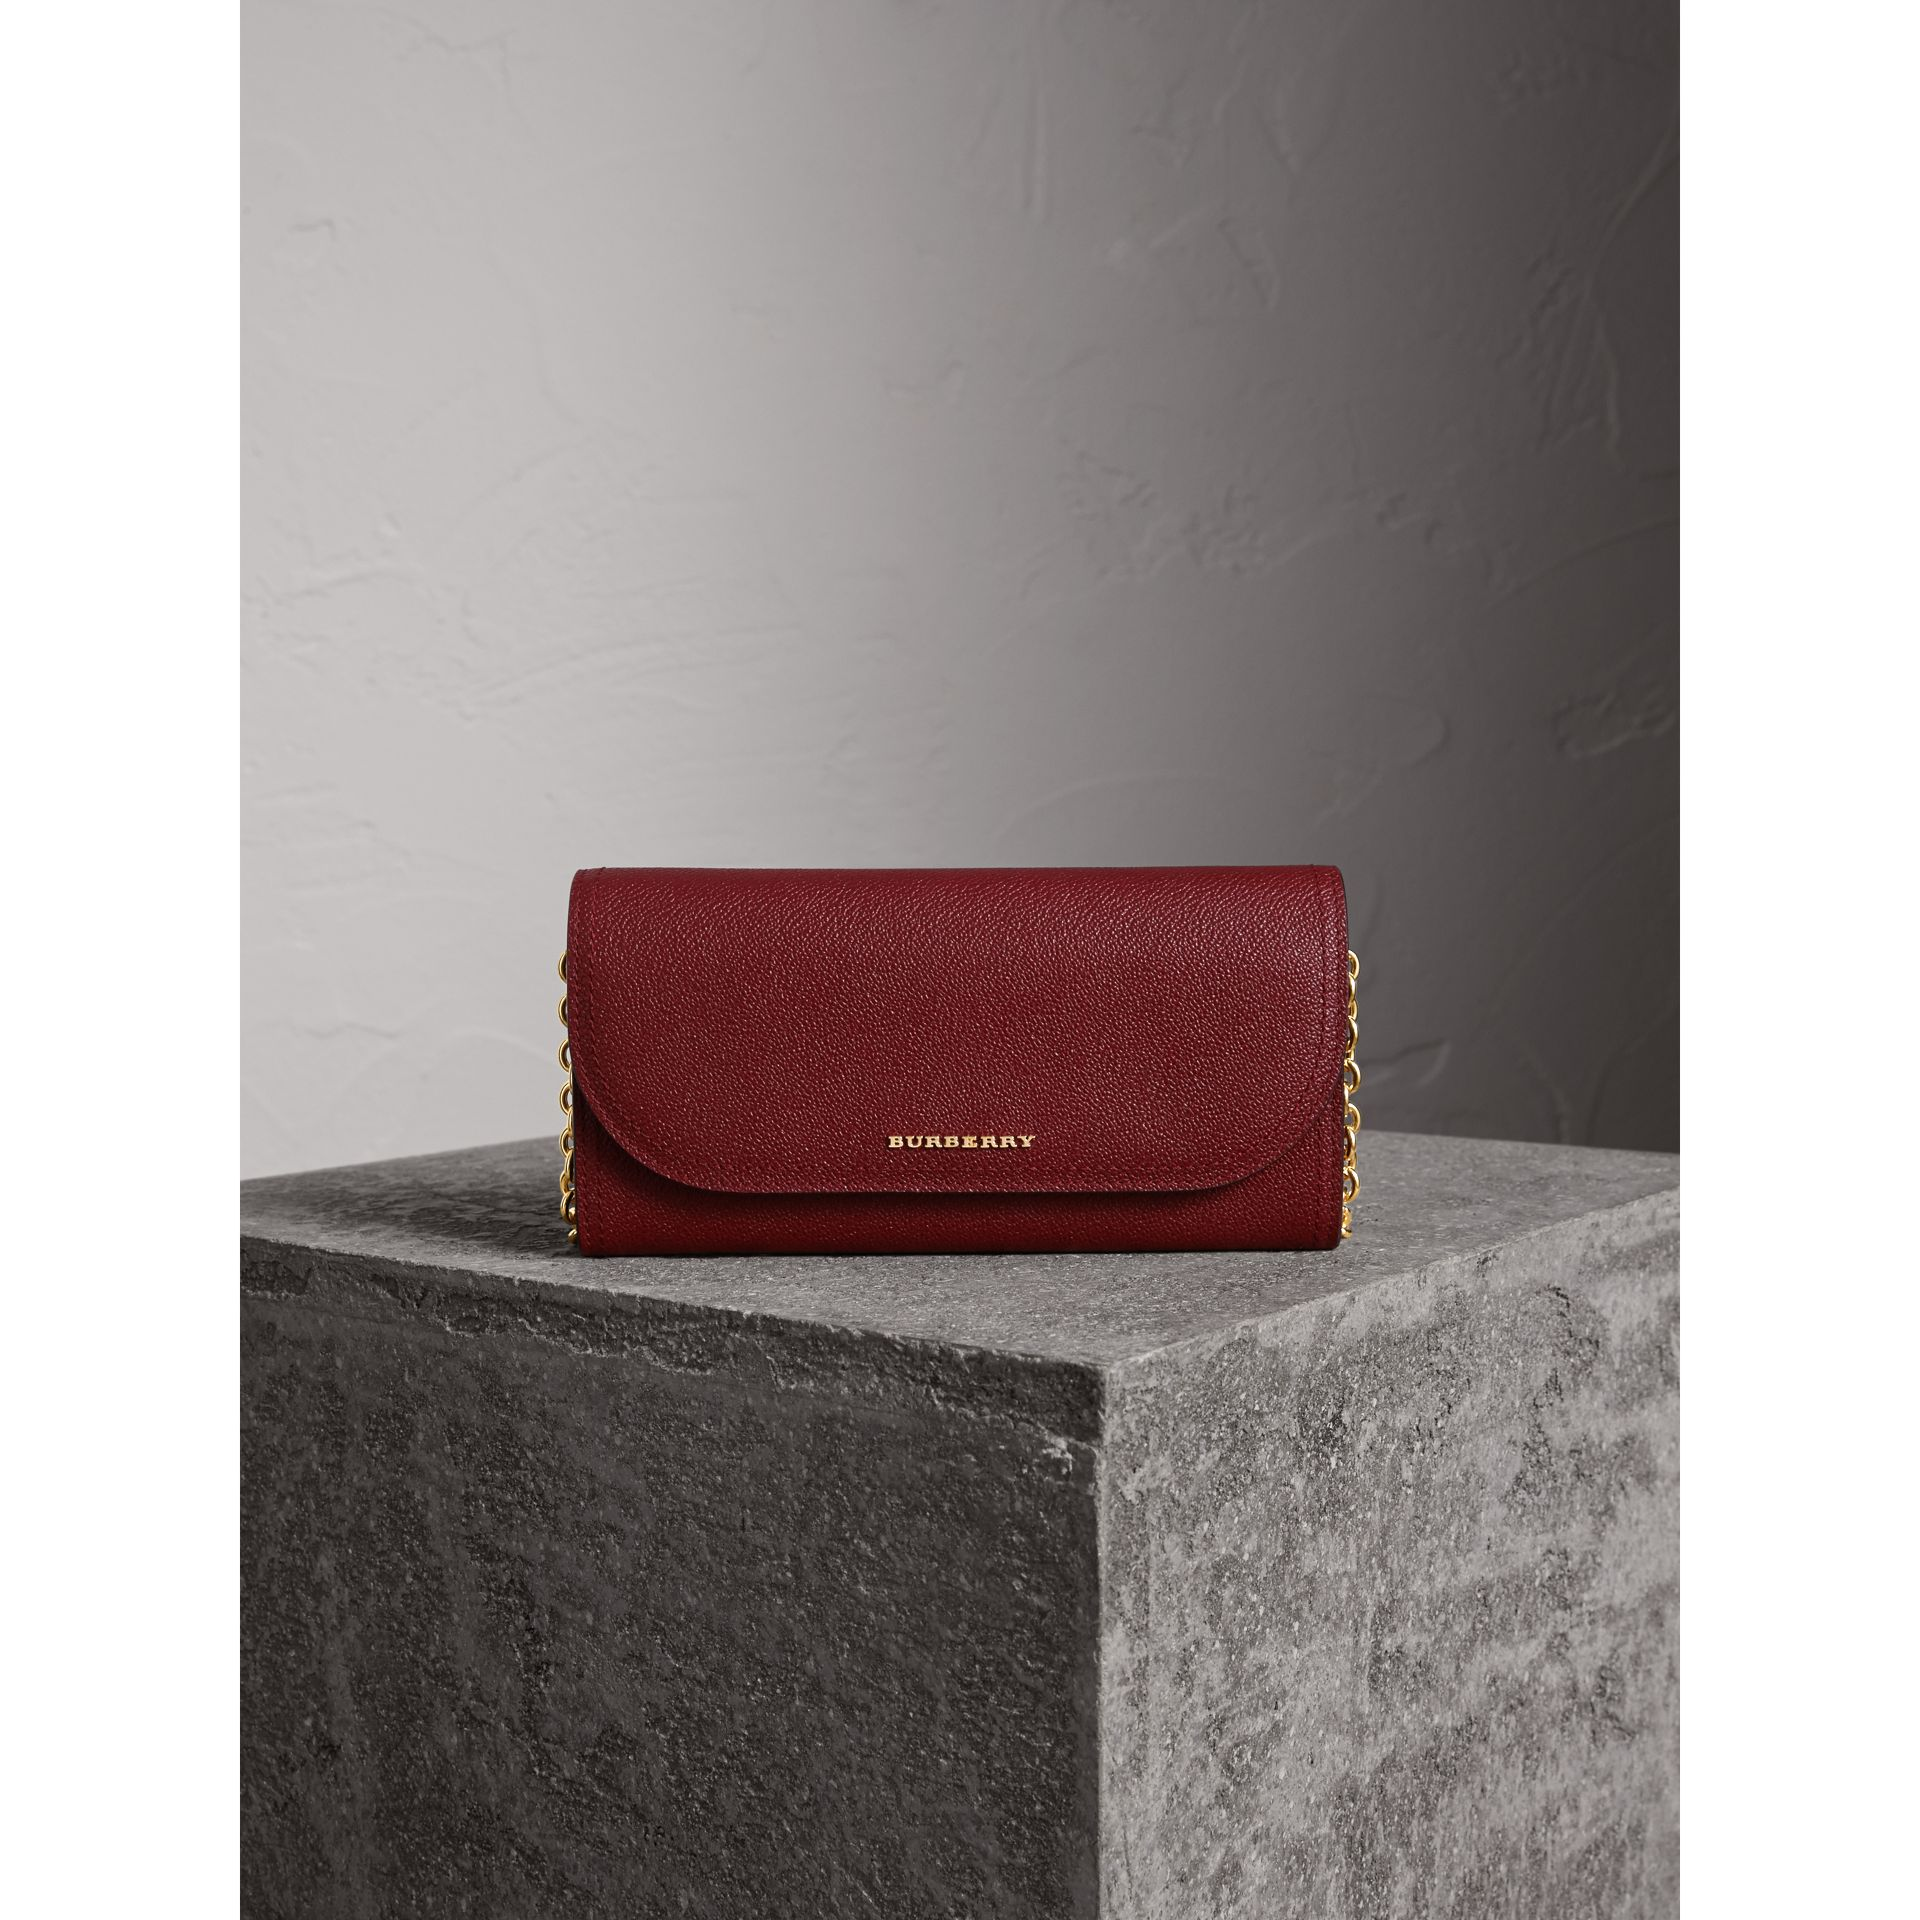 Leather Wallet with Chain in Burgundy - Women | Burberry Australia - gallery image 2